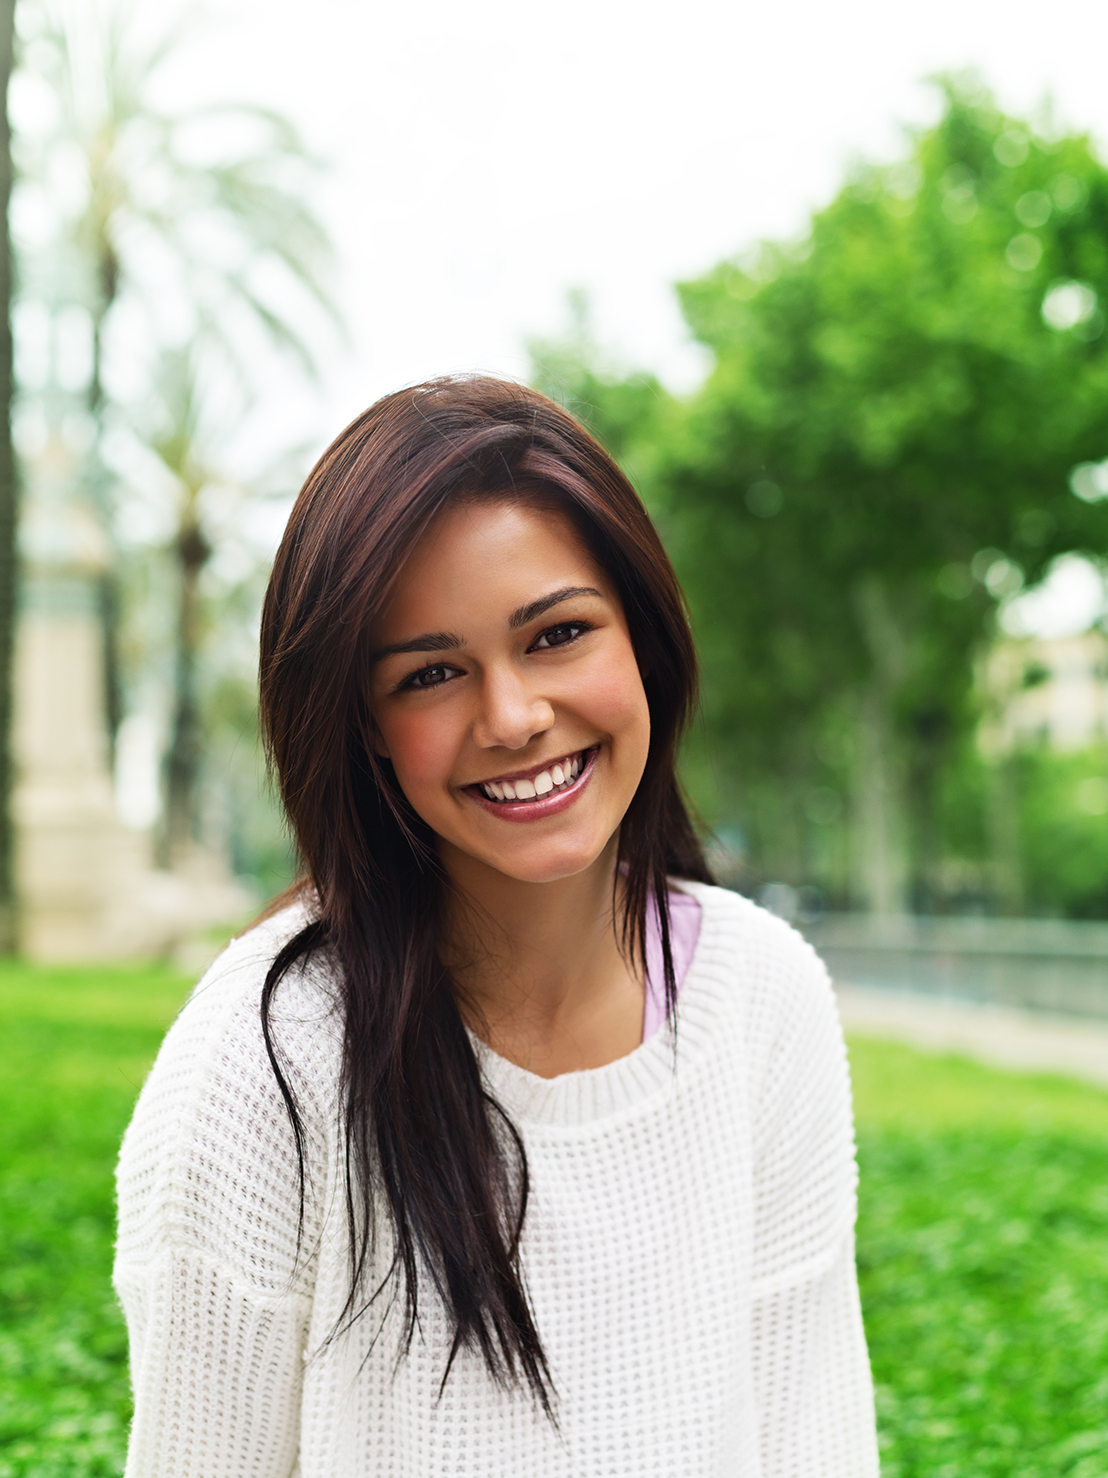 Young woman looking at camera and smiling in a park.